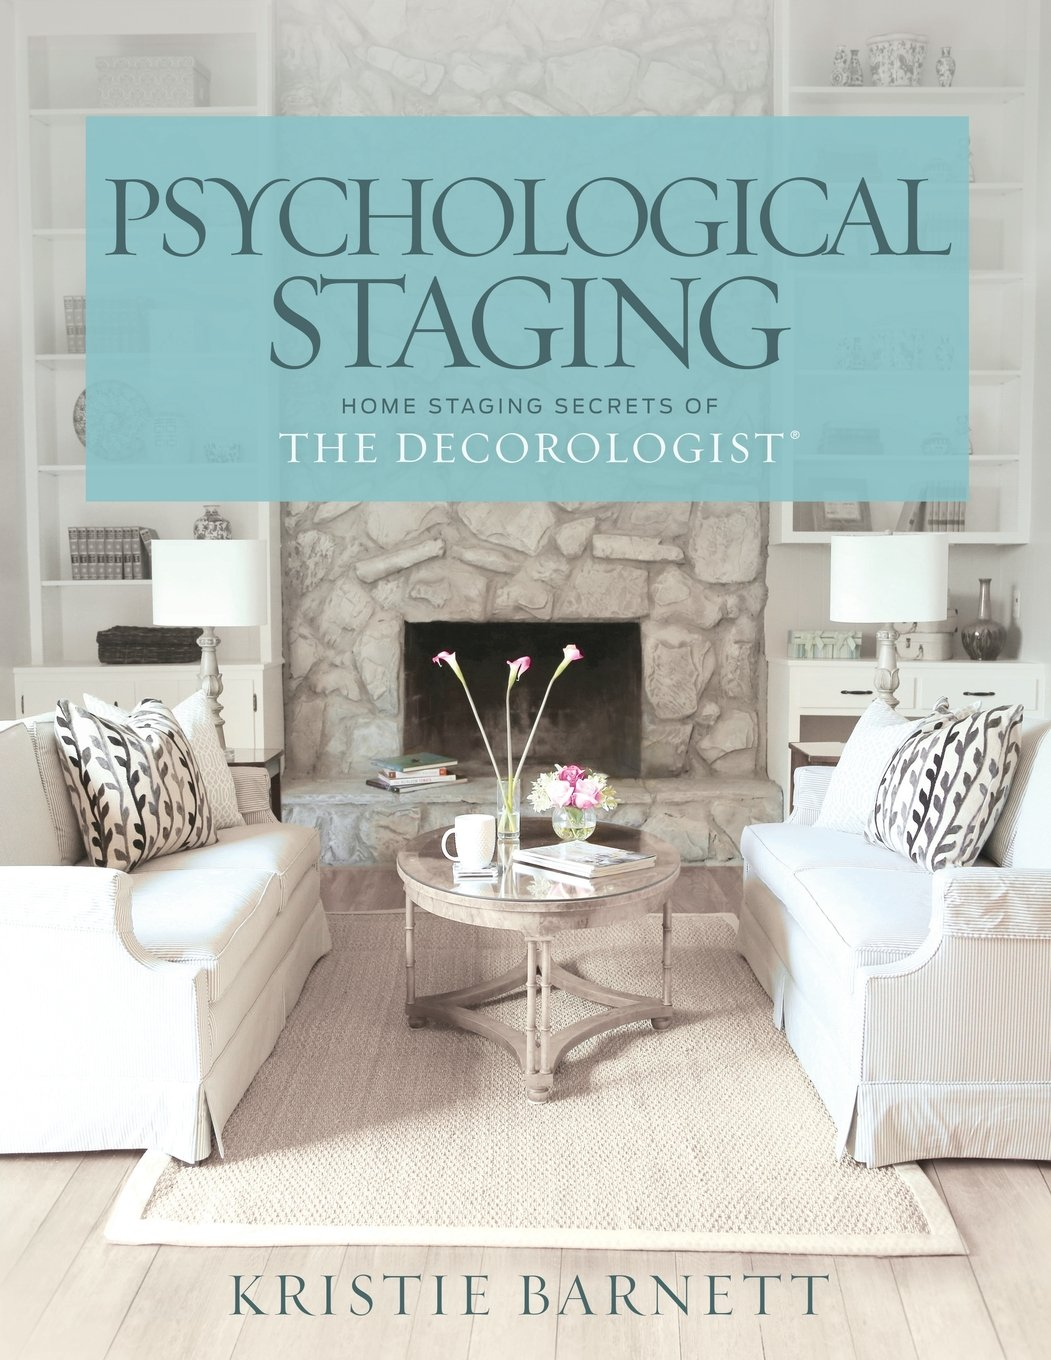 psychological staging home staging secrets of the decorologist kristie barnett 9781500795559 amazoncom books - Home Staging Design